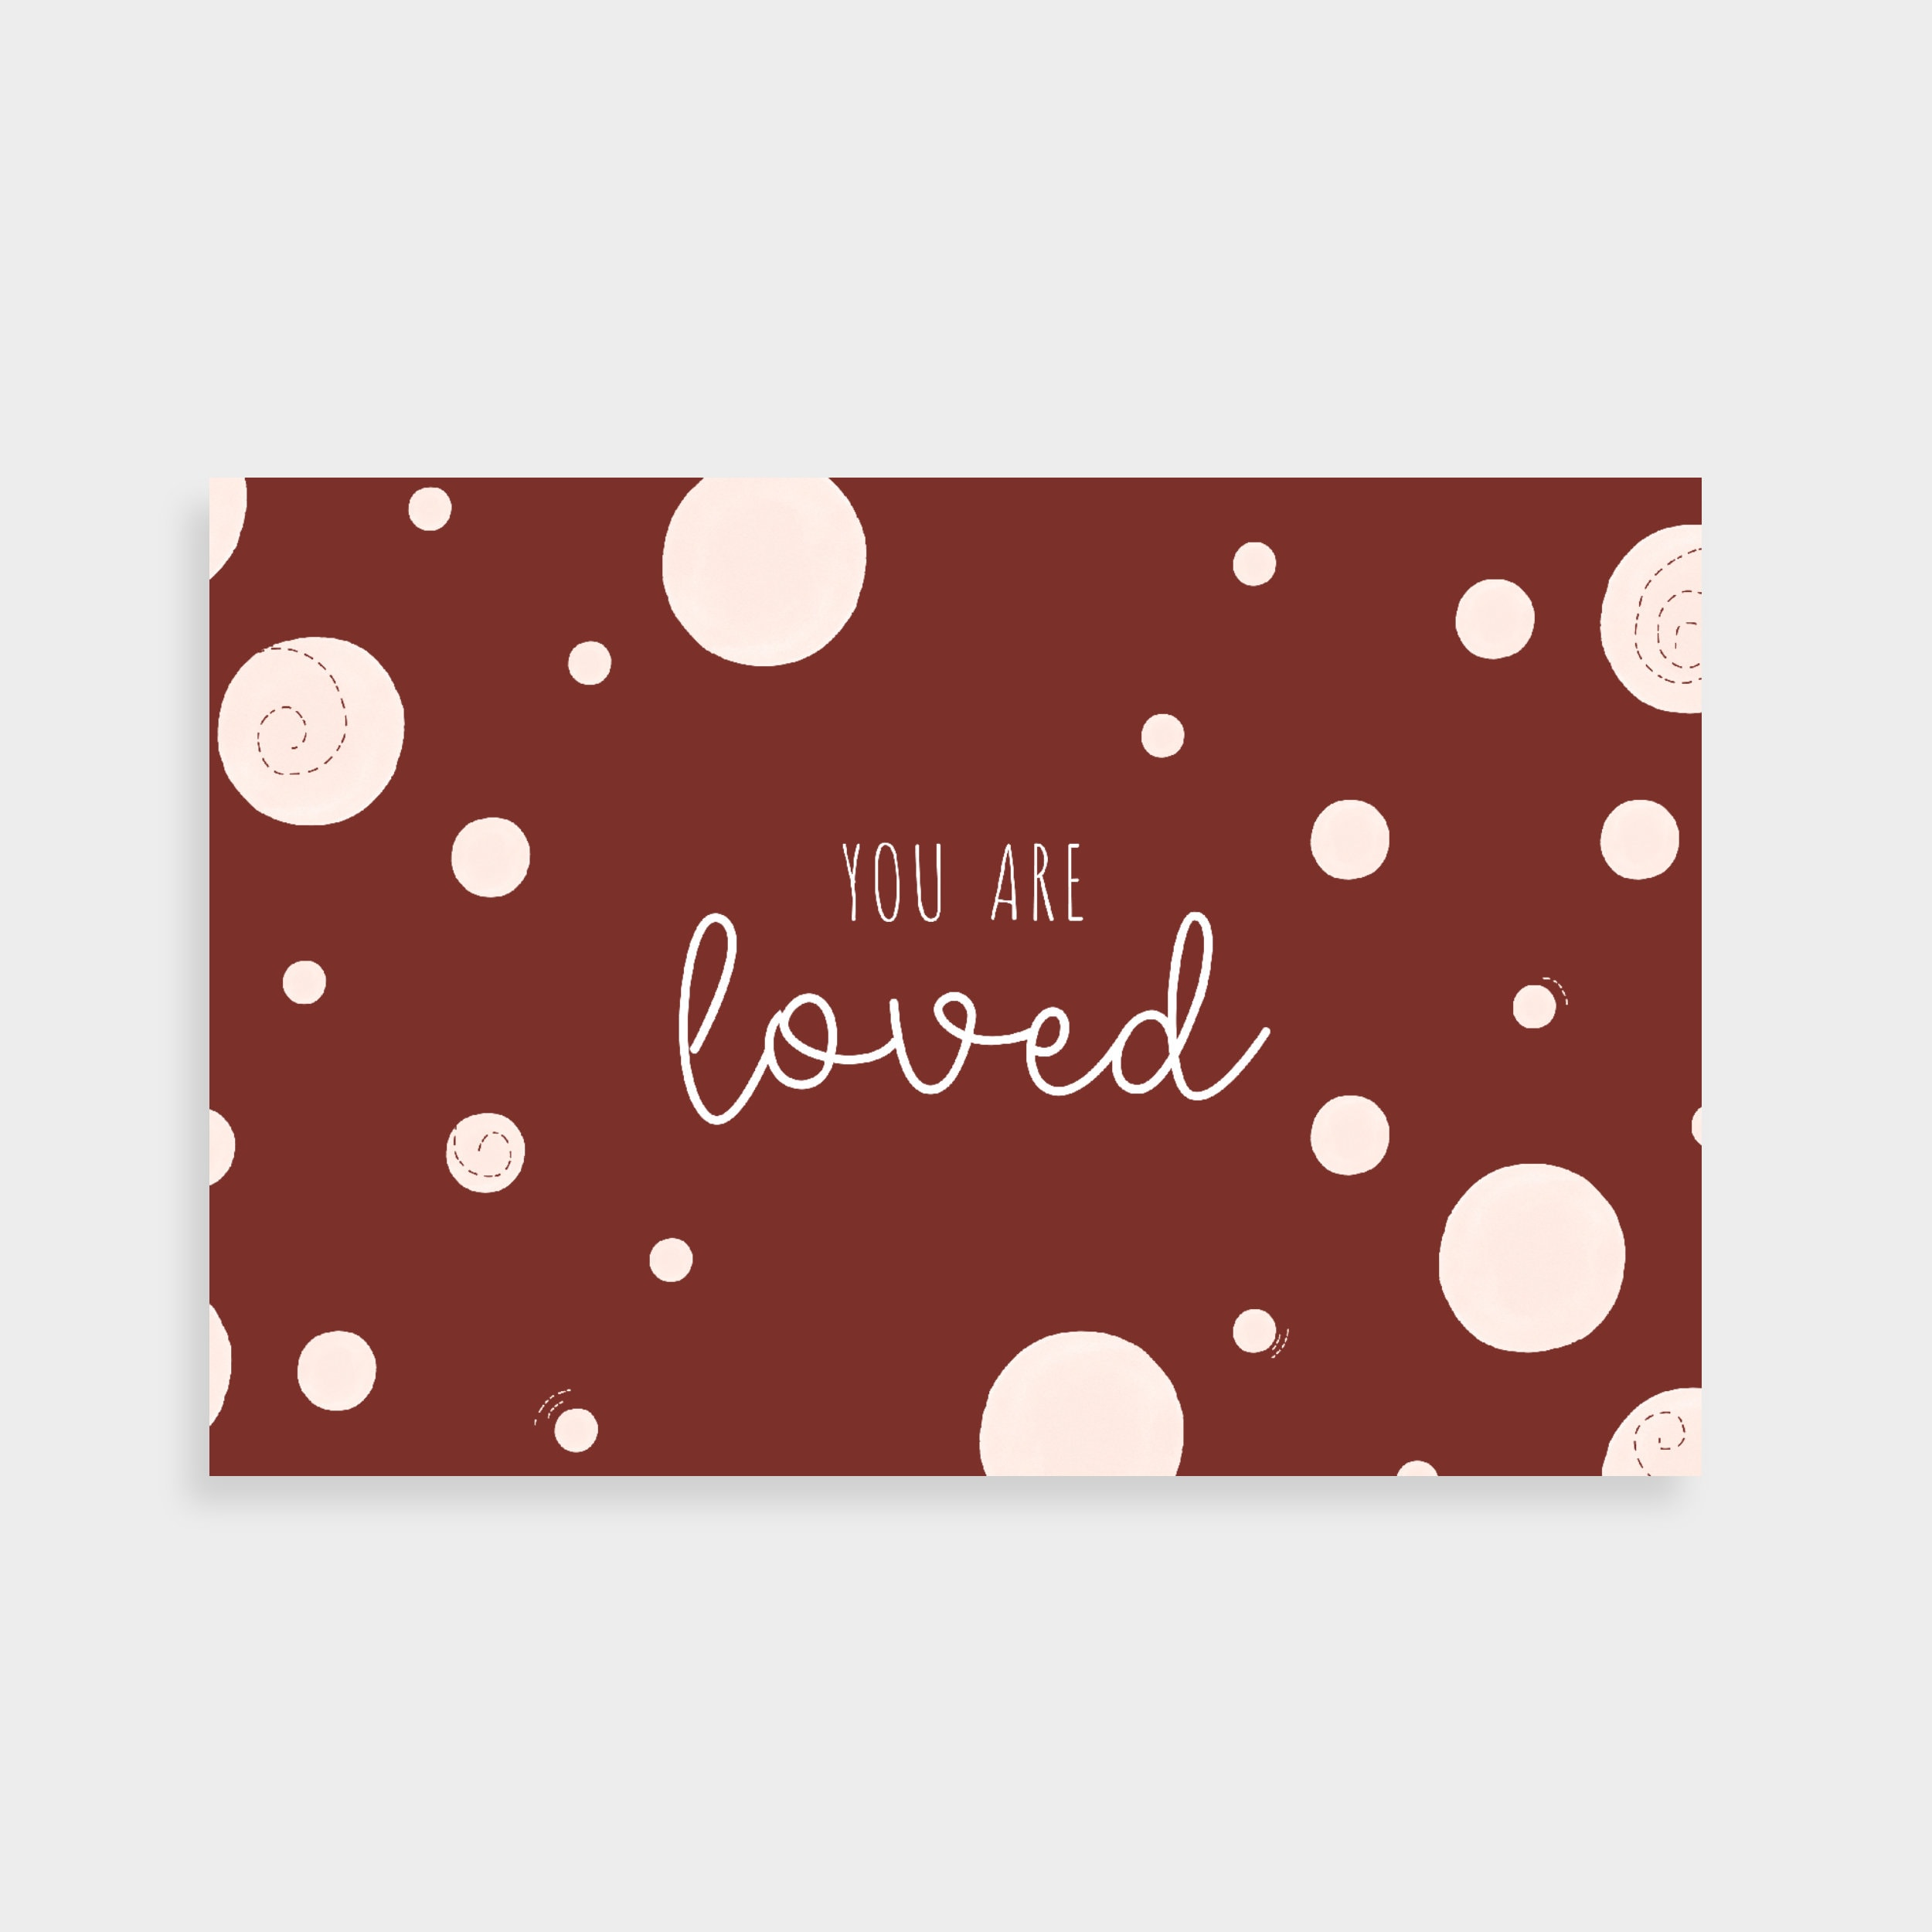 """Dark burgundy postcard with light pink dots. Postcard says """"You are loved"""" in the middle"""